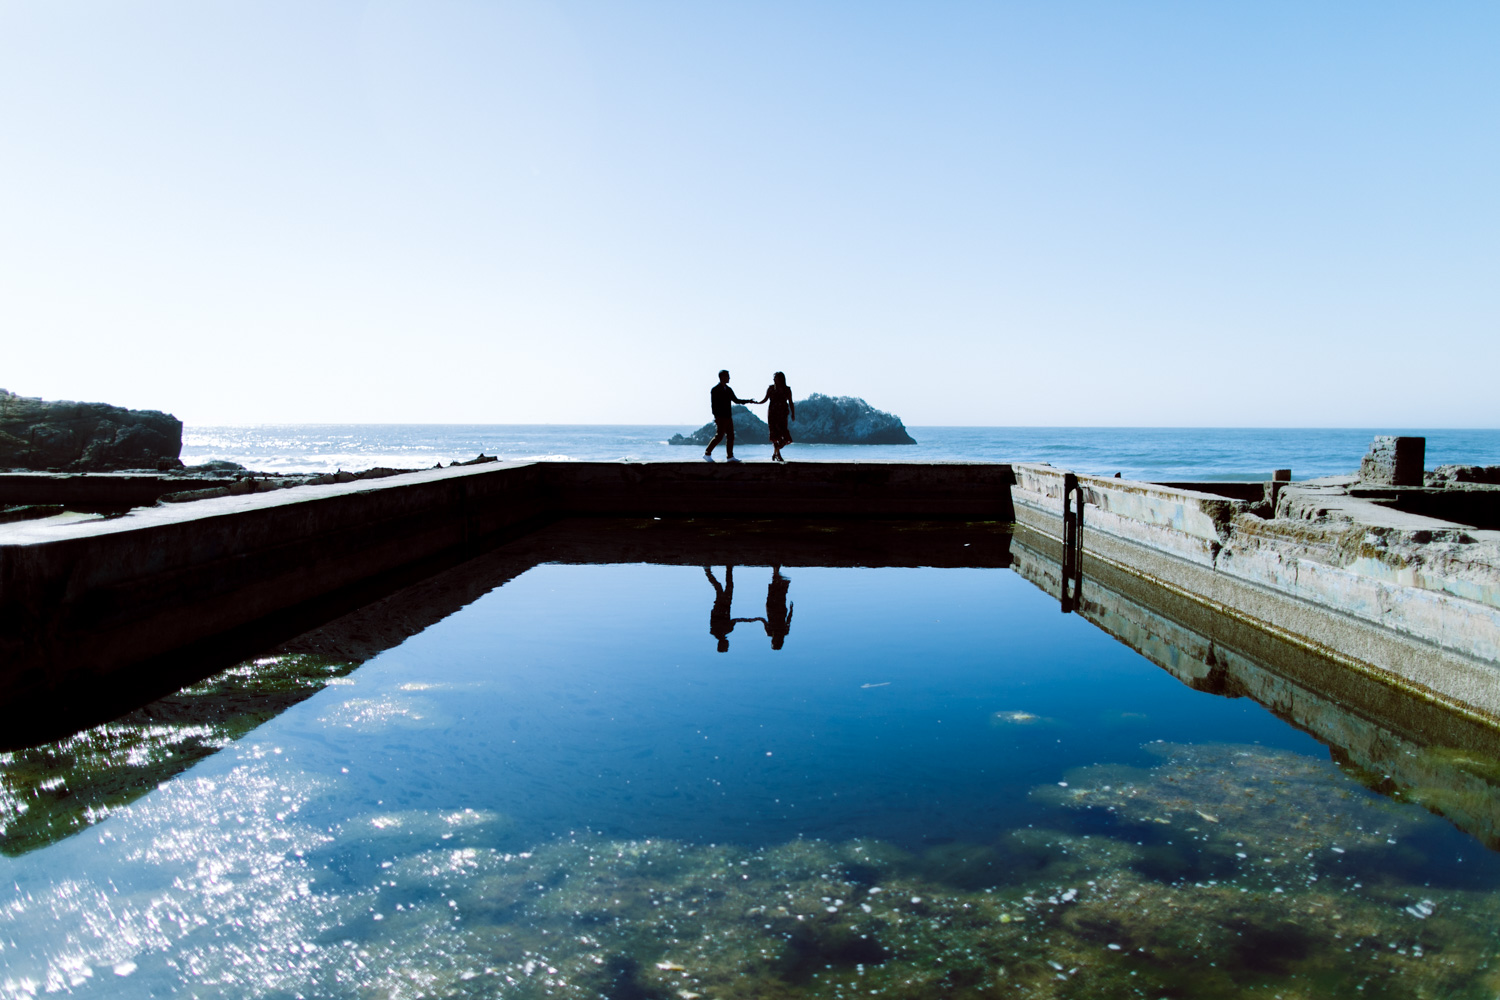 San Francisco engagement photo locations spots for cool photography sutro baths couple